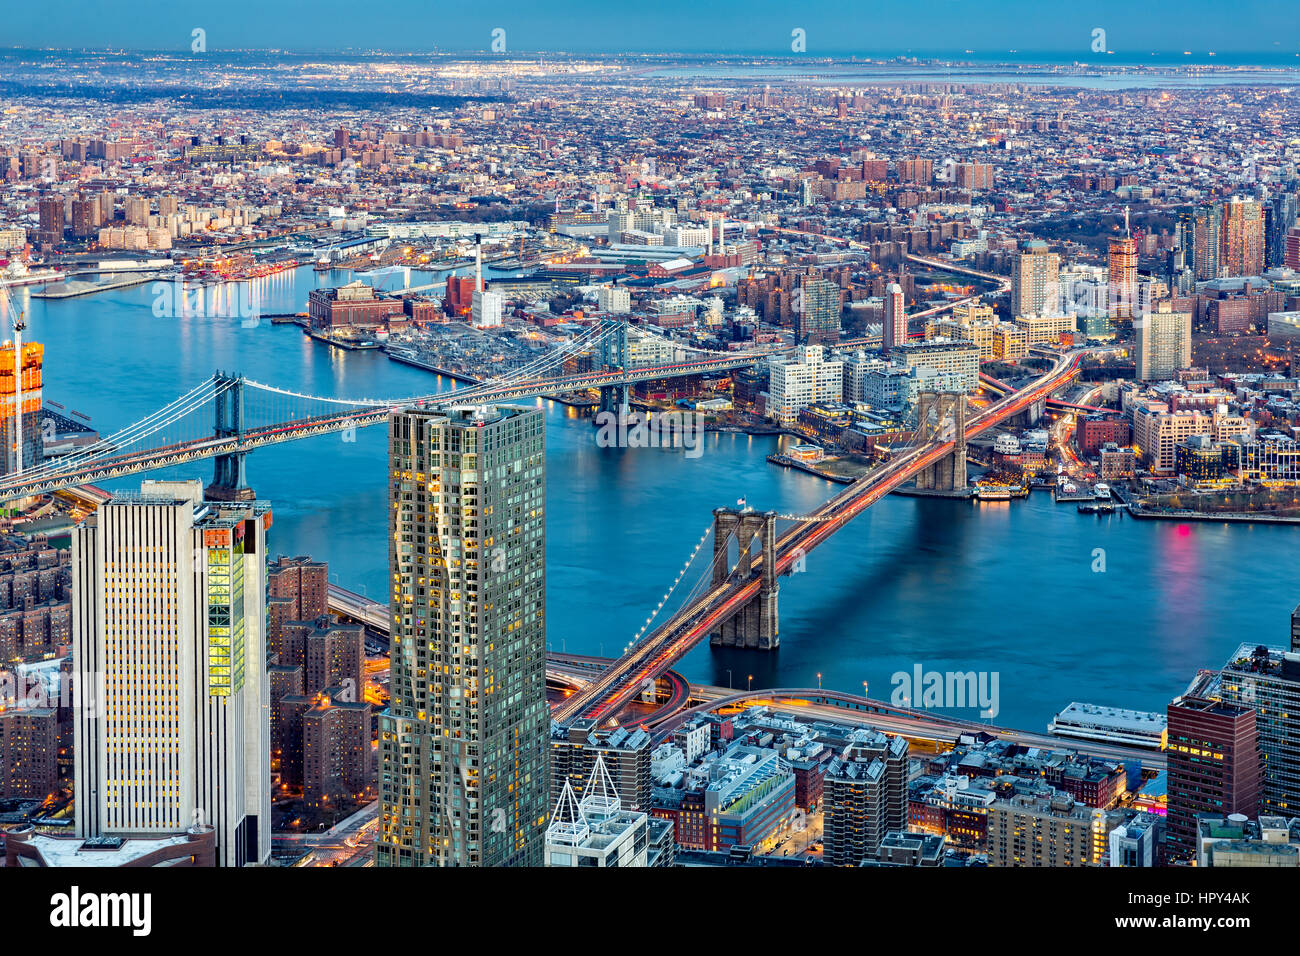 Brooklyn and Manhattan bridges span East River at dusk, between Manhattan island and Brooklyn borough - Stock Image